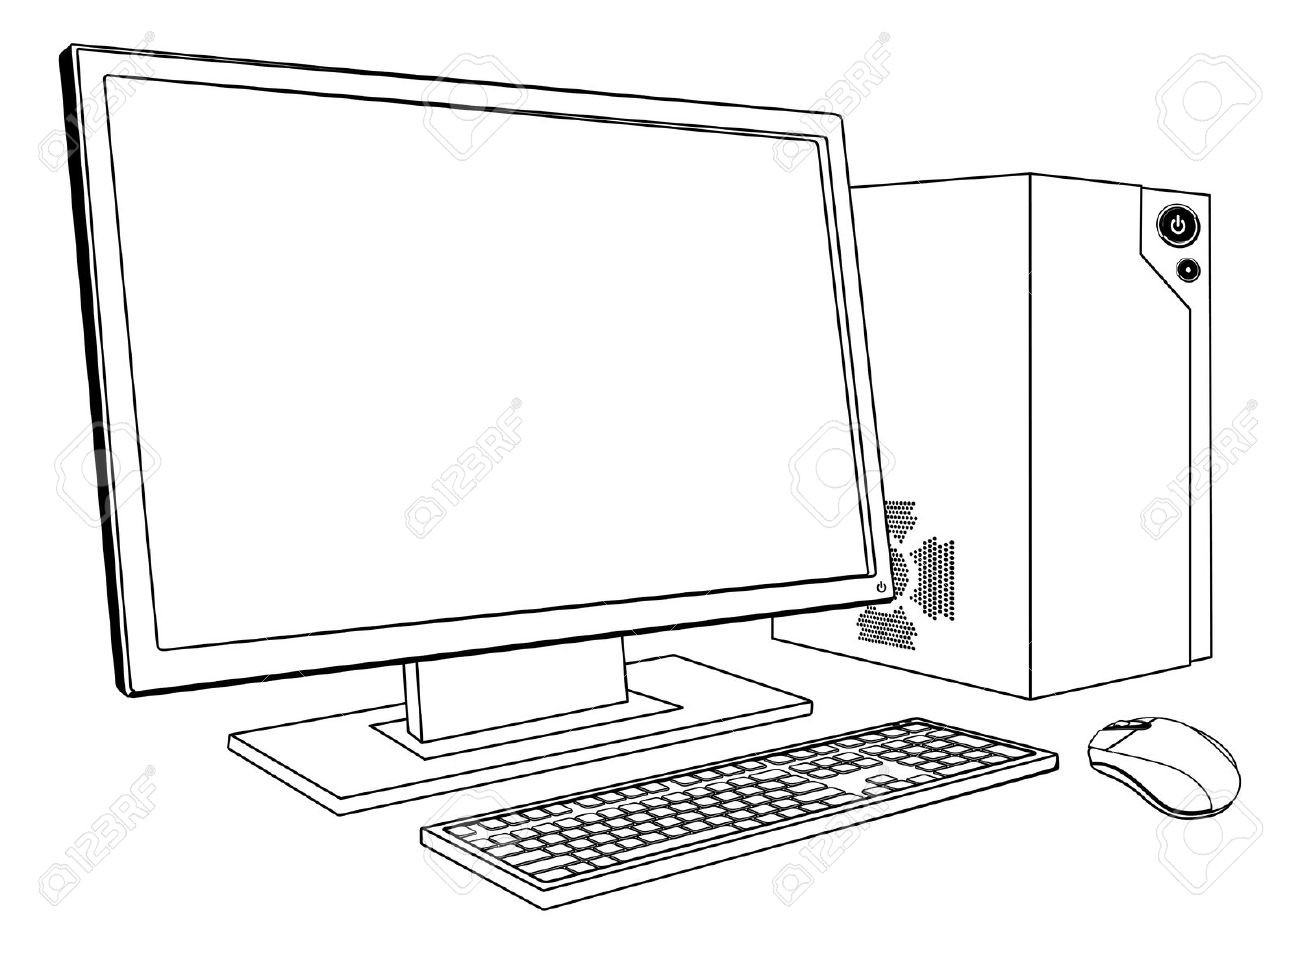 Clipartfest dafaeeb . Computer keyboard clipart black and white